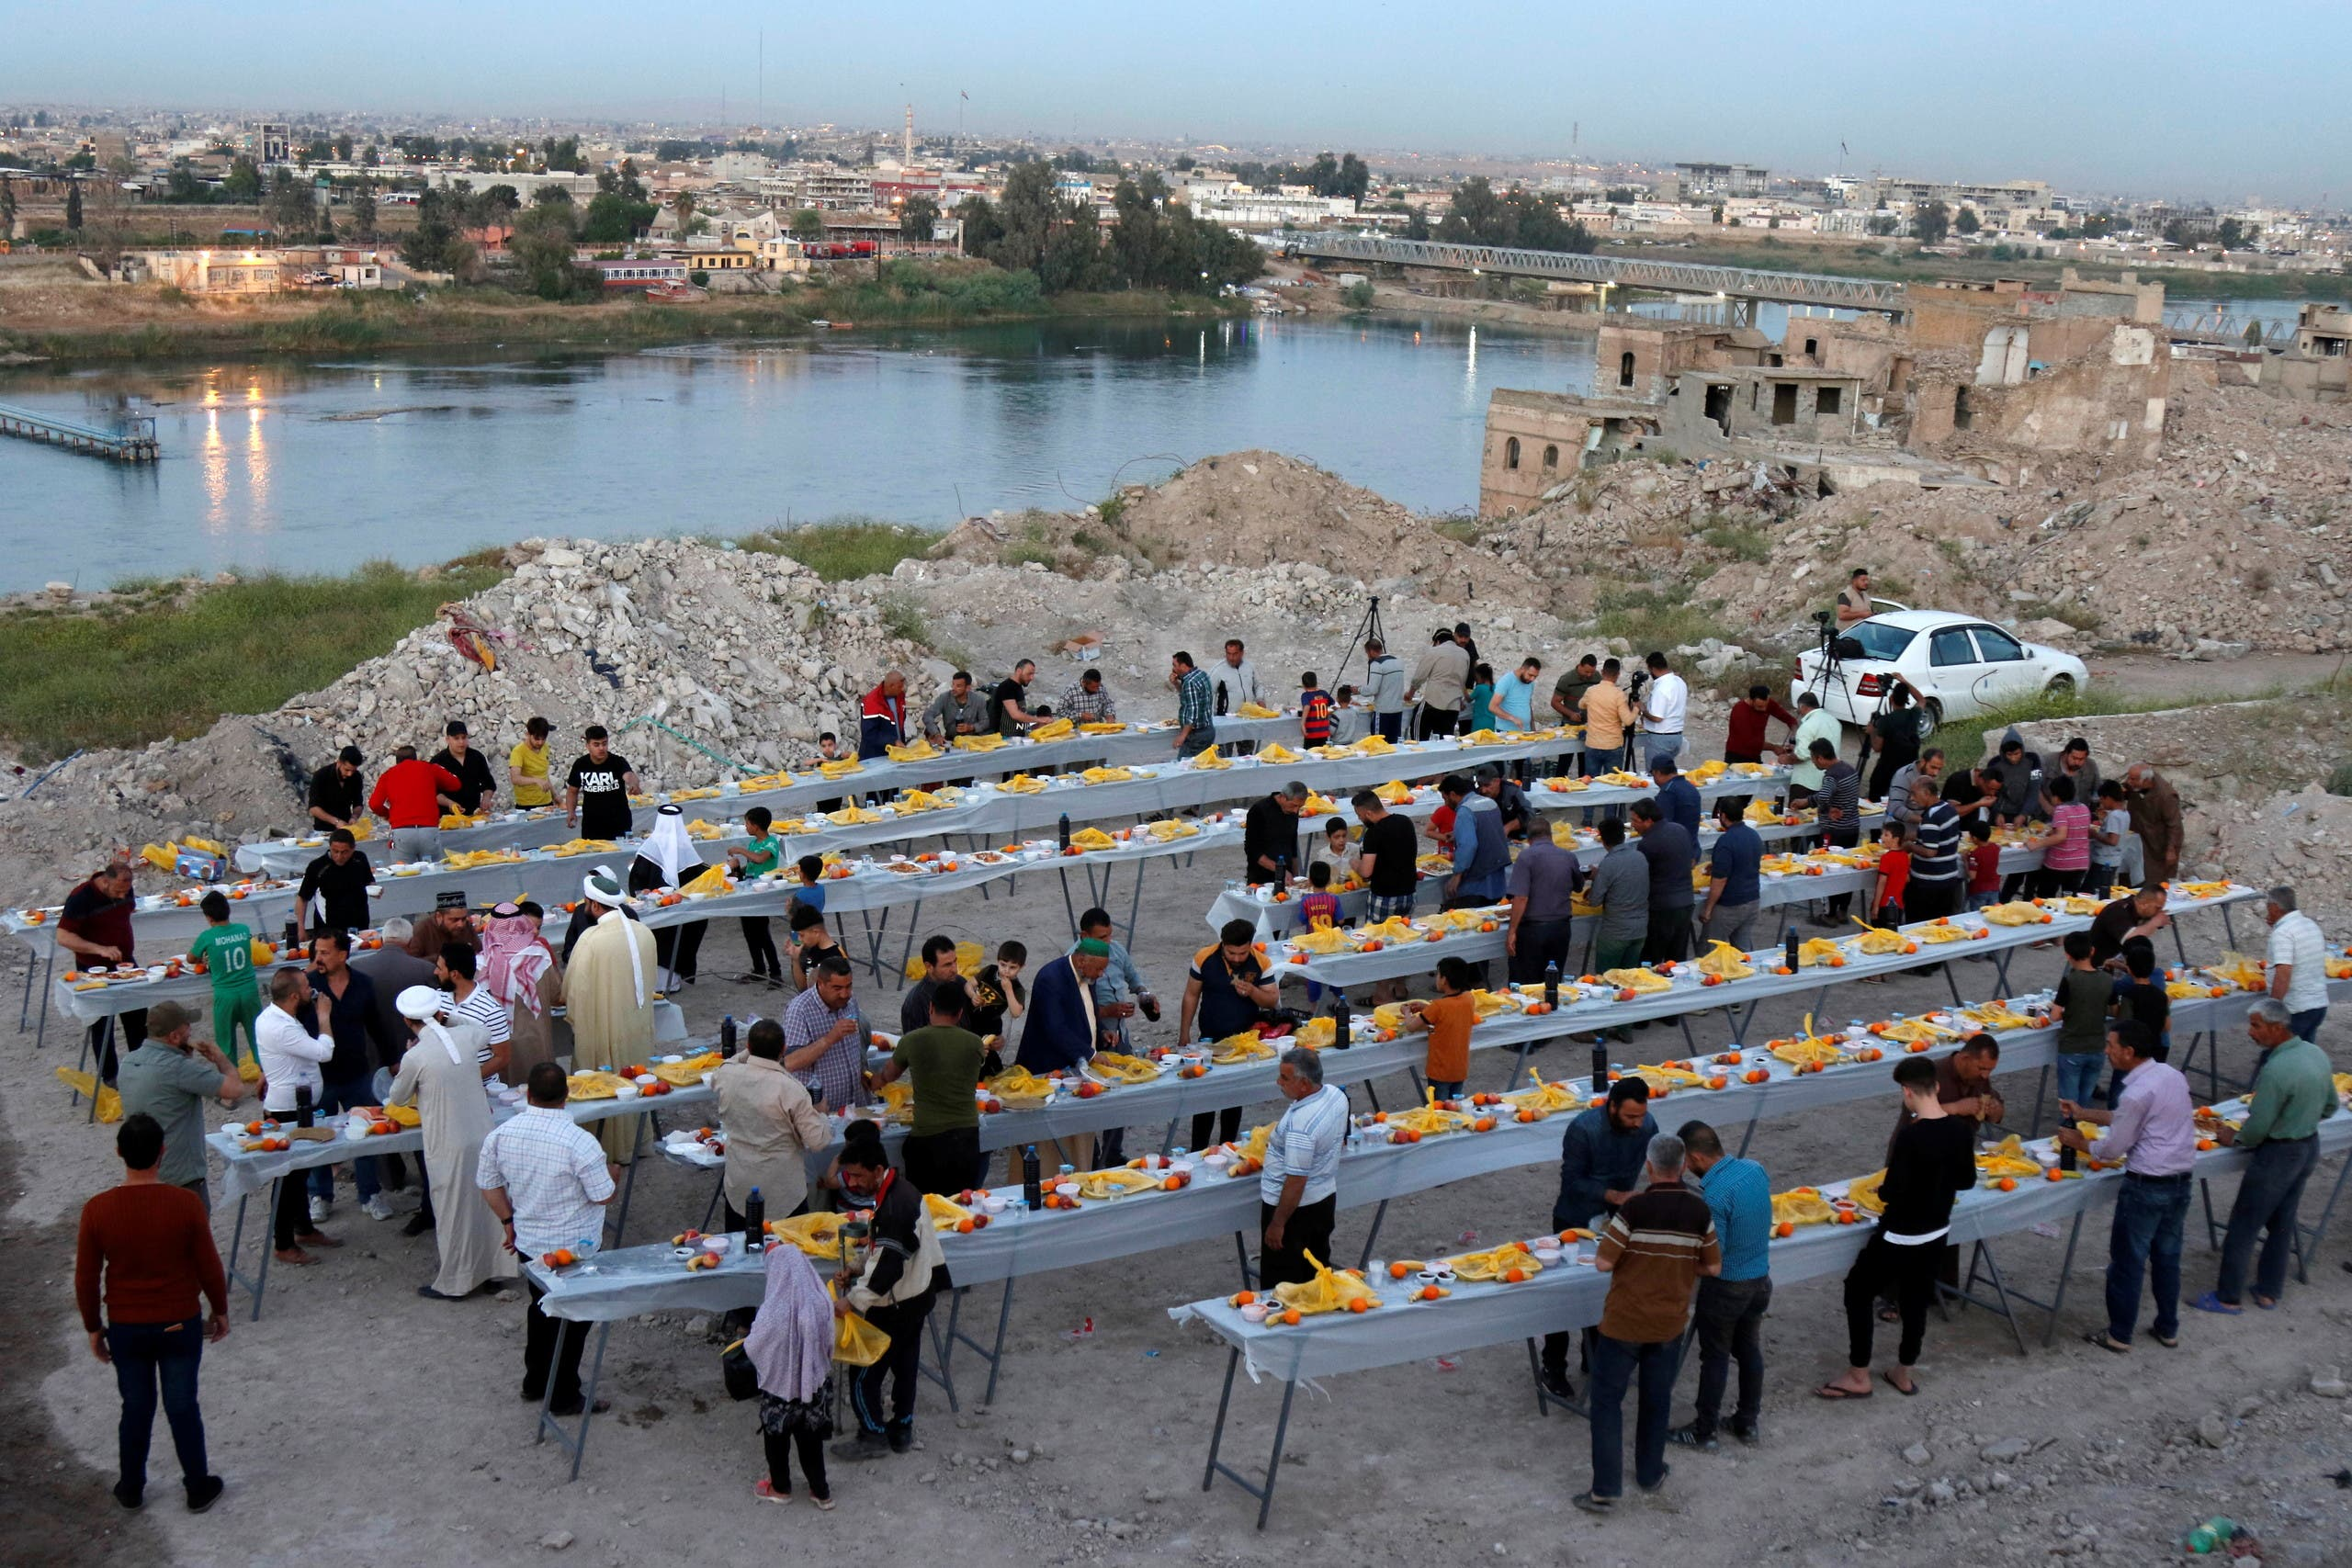 People gather to have their Iftar (breaking fast) meals during the fasting month of Ramadan, in Mosul, Iraq. (Reuters)